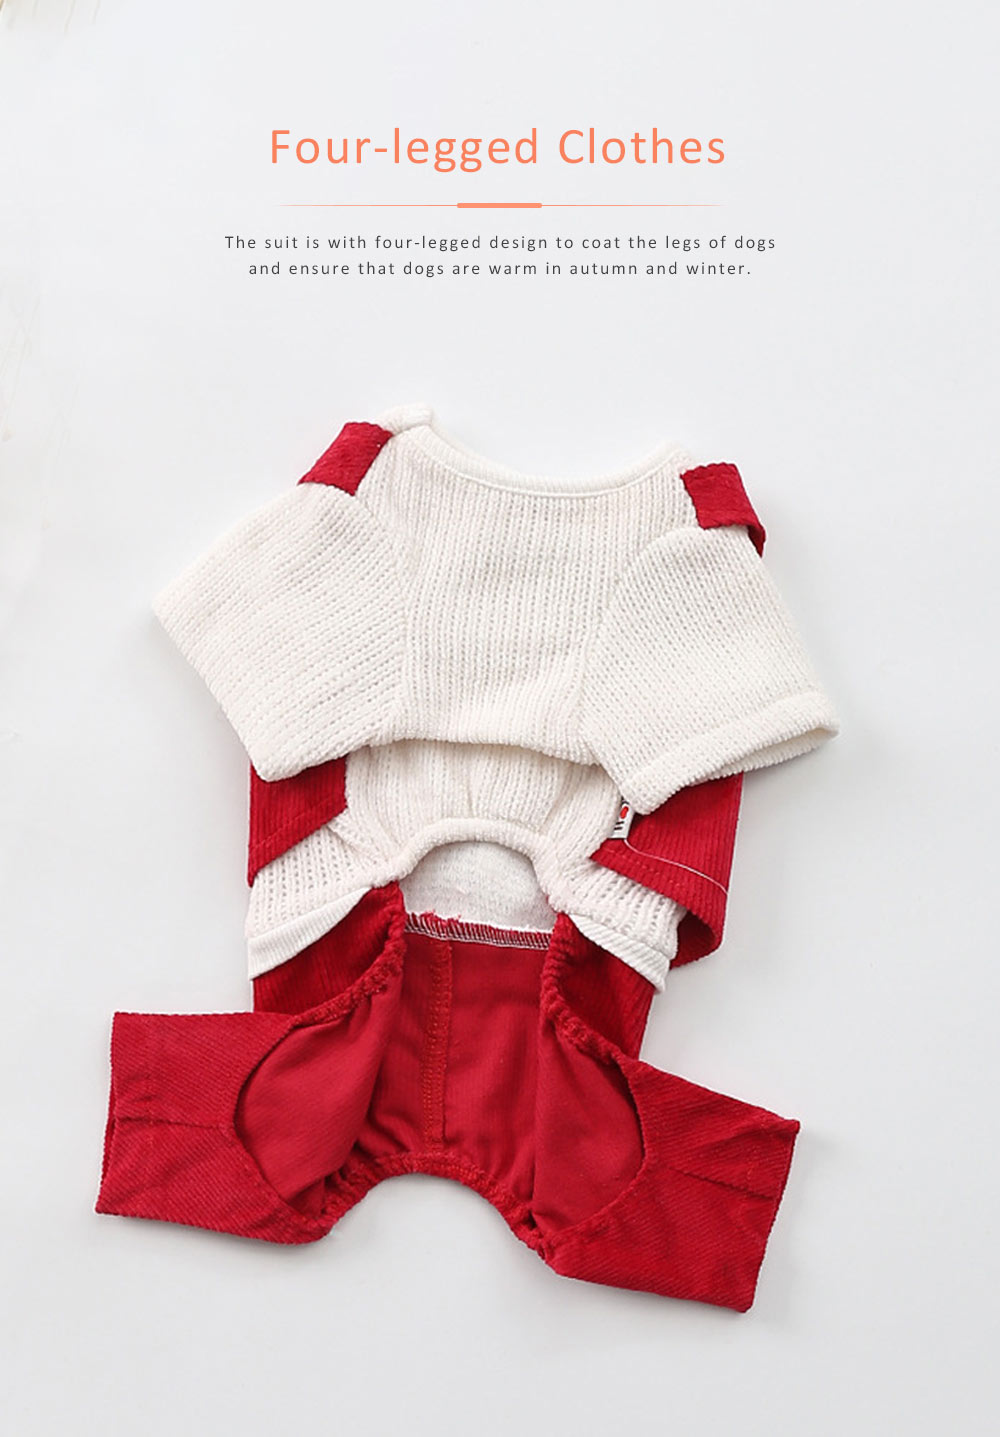 Dog Dressings Four-legged Knitted Fake Two-piece Pet Clothes in Autumn and Winter Pet Clothes 2